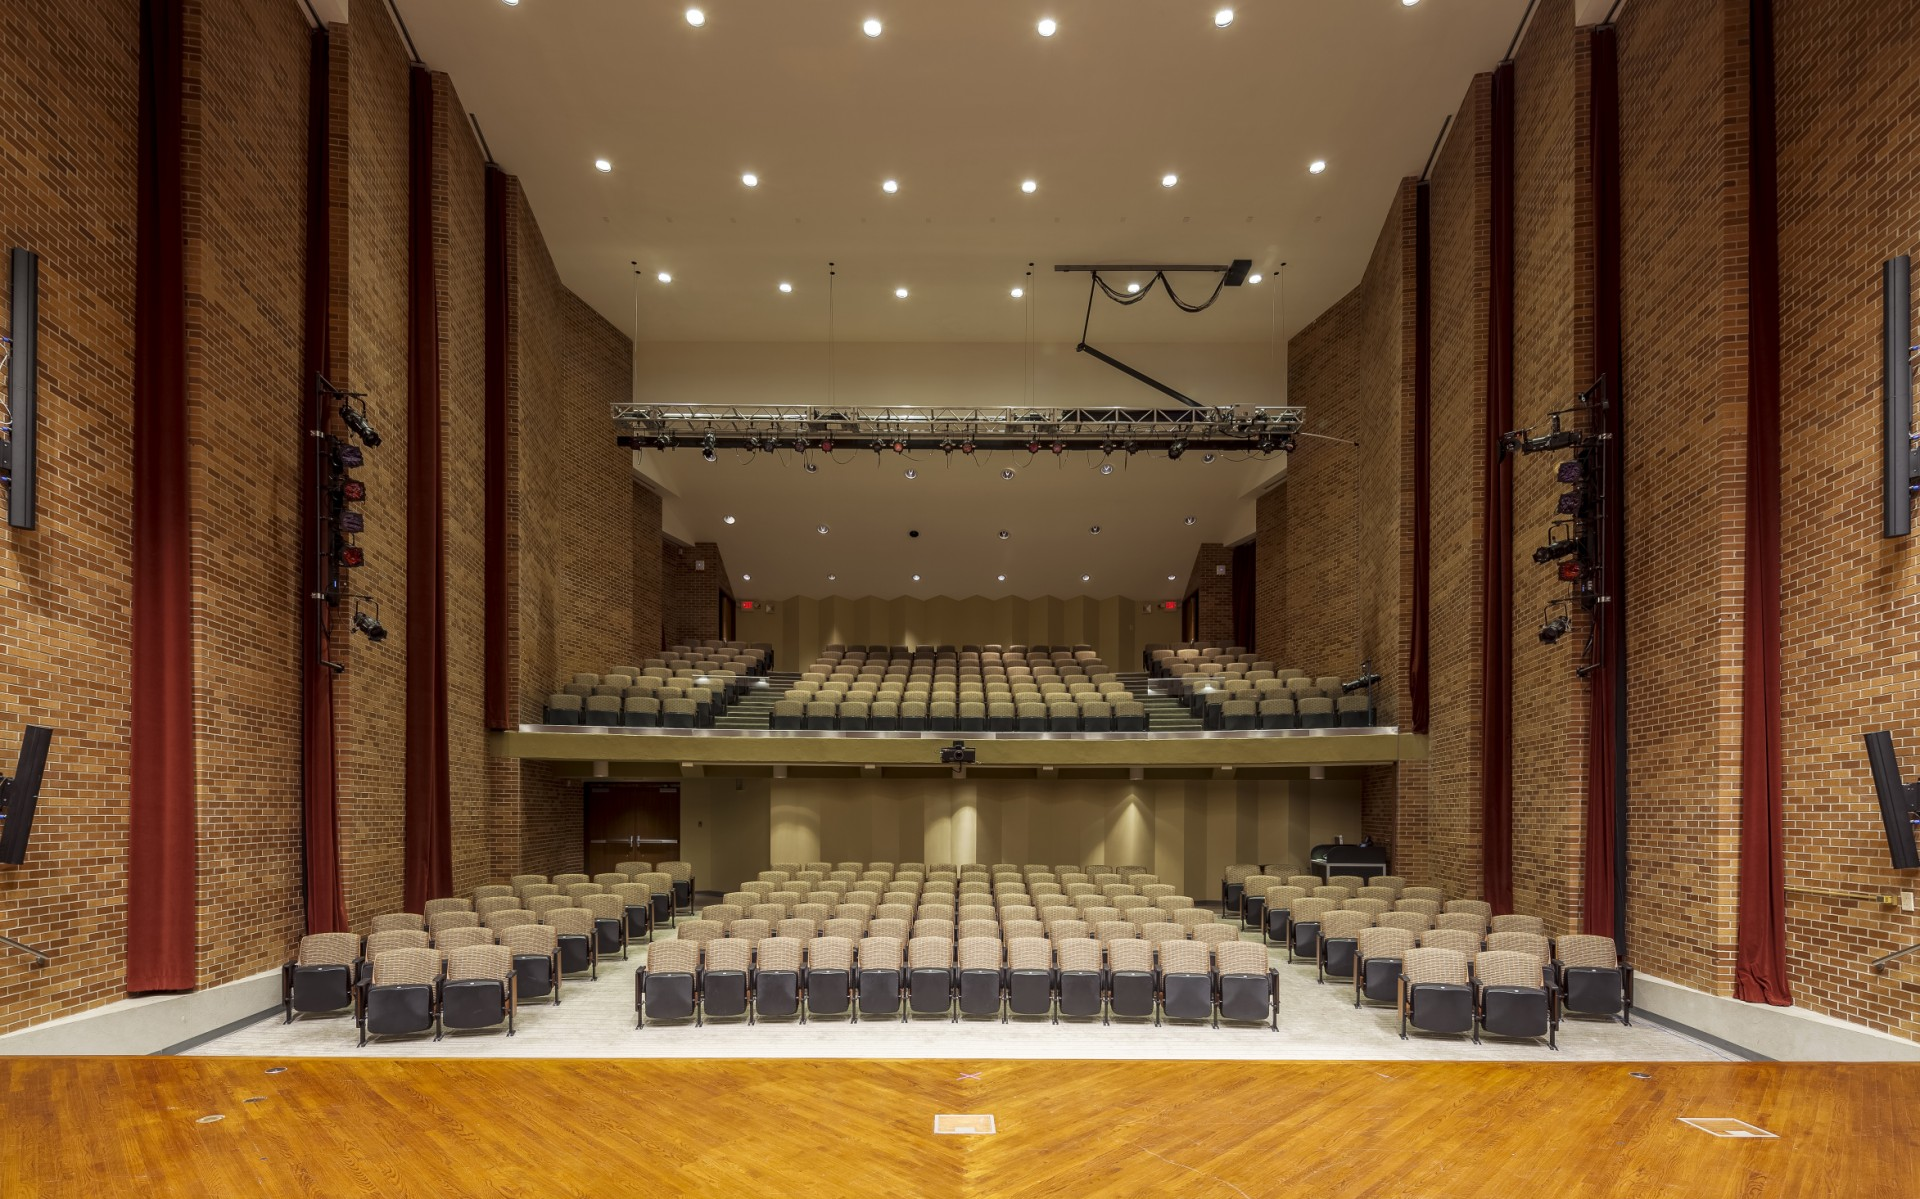 The University of Arkansas at Little Rock wanted to turn the Stella Boyle Smith Concert Hall into a flexible space for music, drama, lectures and more.